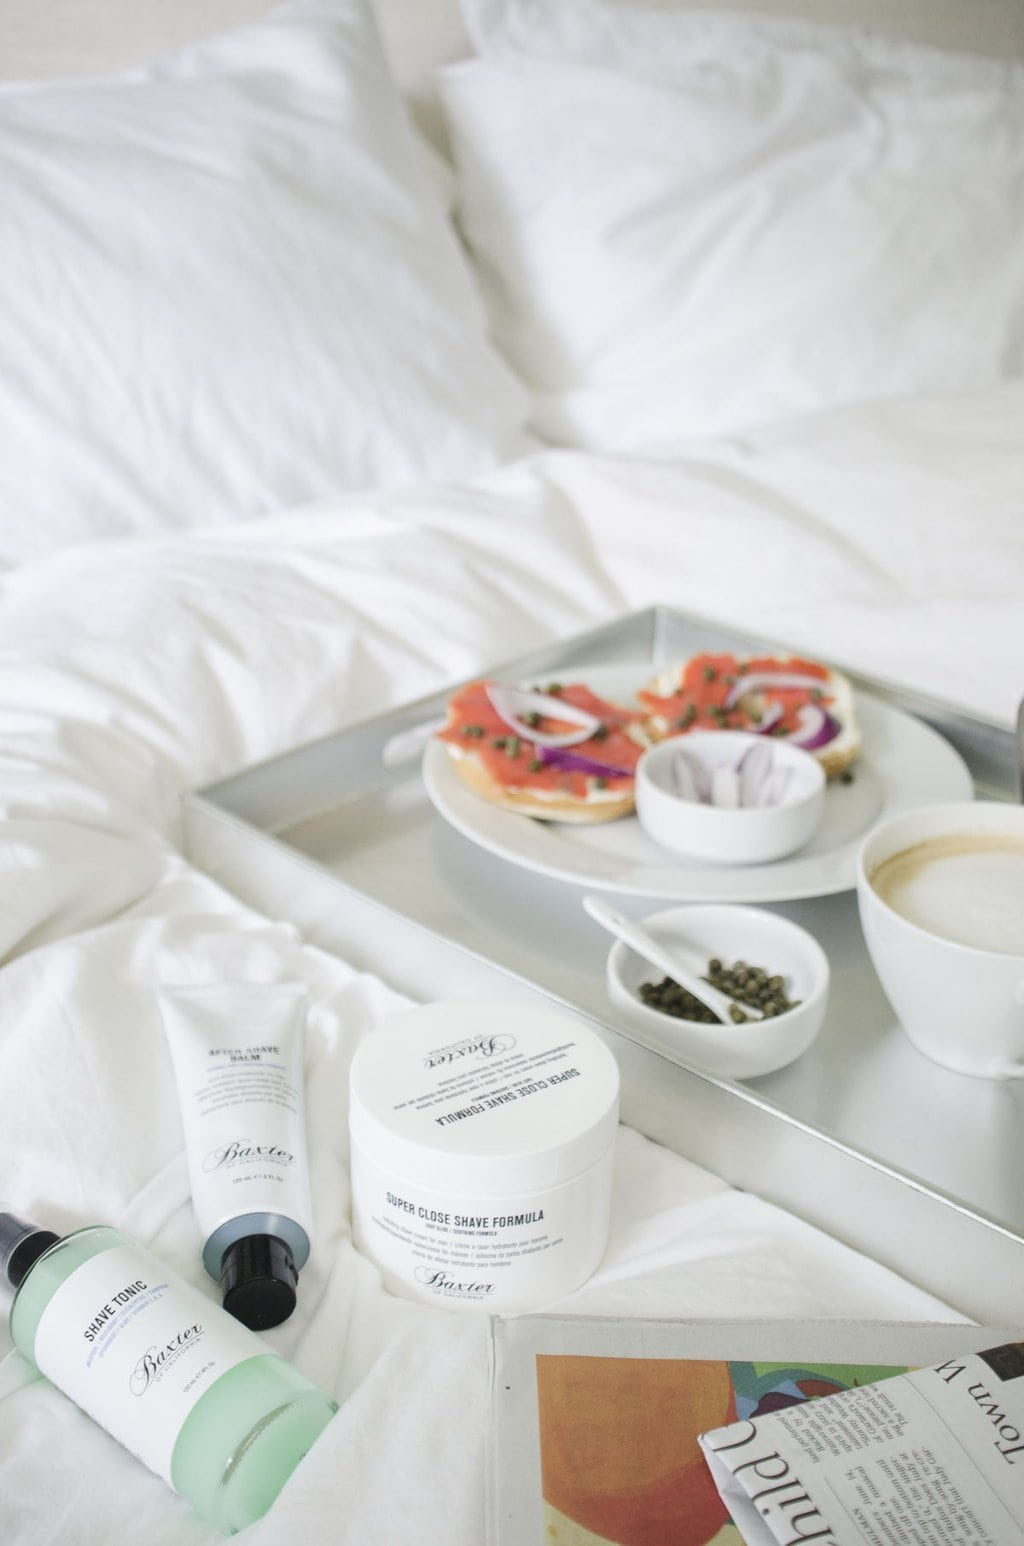 Breakfast in bed for Father's Day with Baxter on @thouswellblog